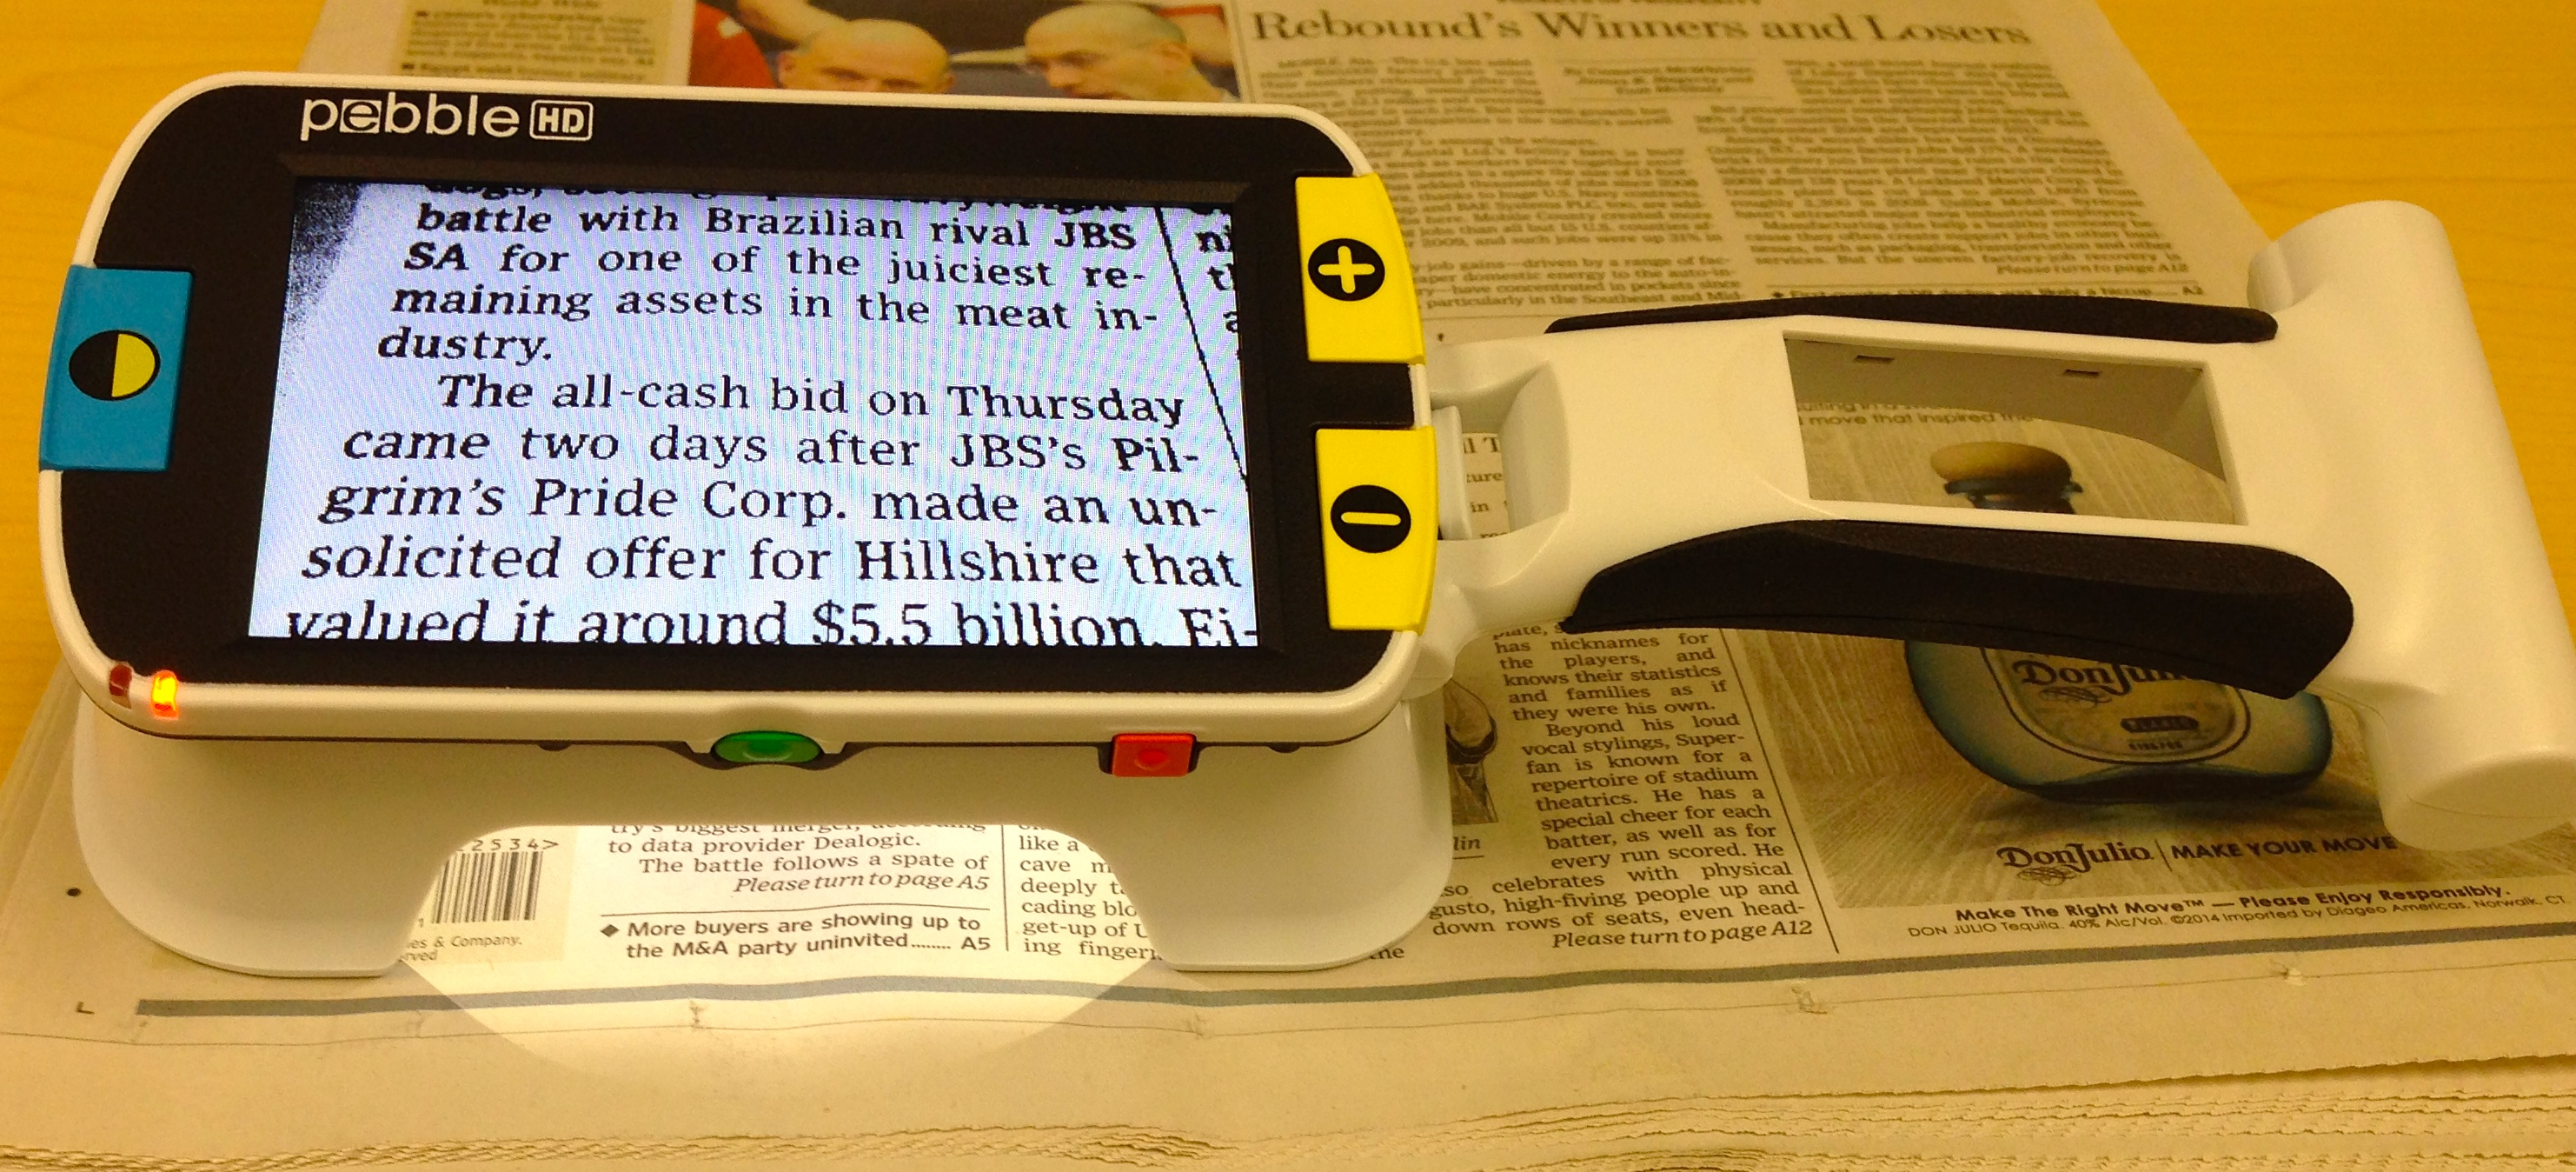 pebble hd with stand low vision video magnifier new england